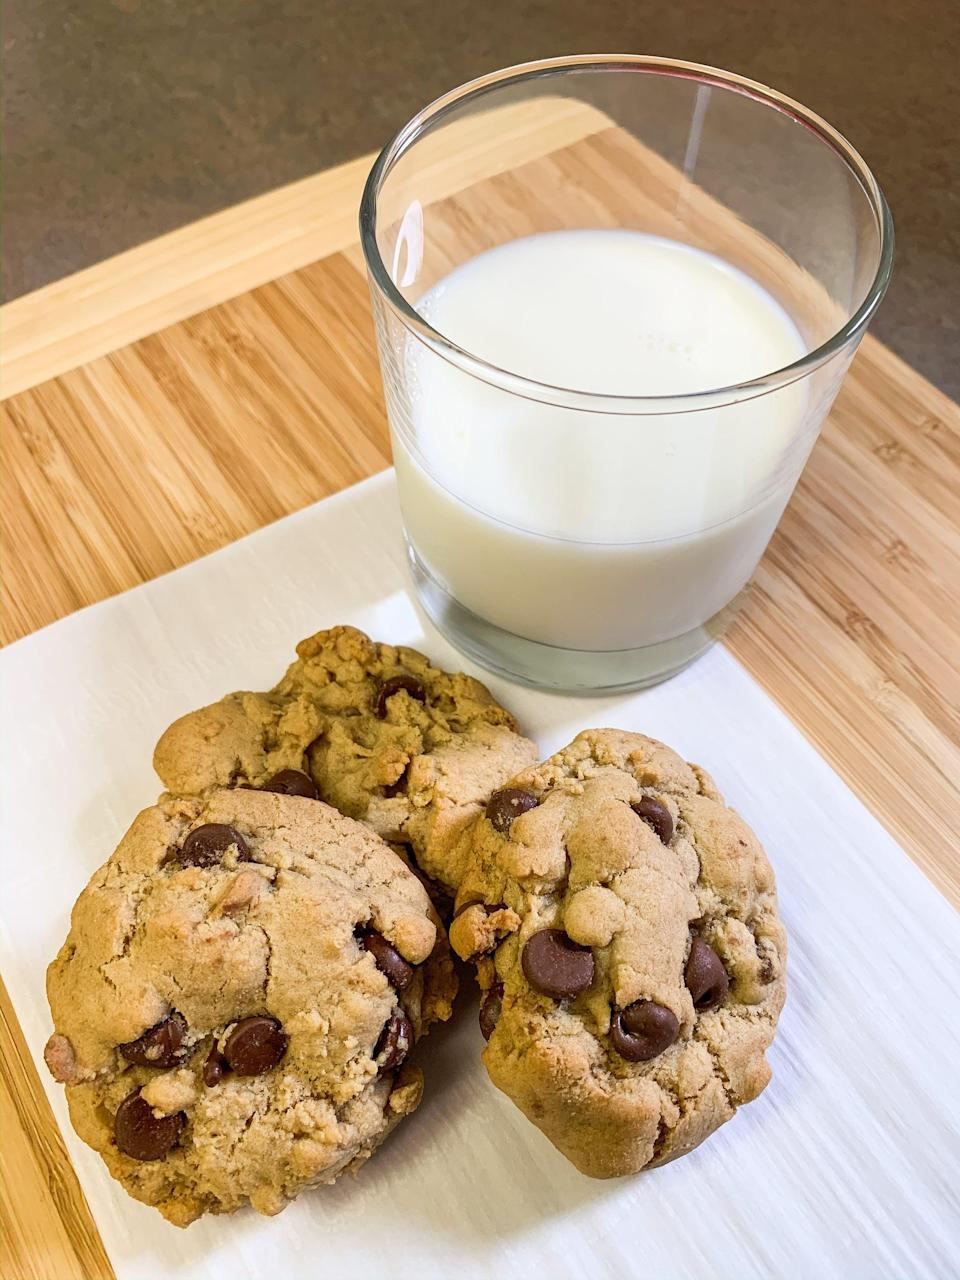 "<p>Chocolate chip cookies are a classic baking staple, an iconic comfort food, and timeless in every way. This recipe is in Joanna Gaines's <a href=""https://www.amazon.com/Magnolia-Table-Collection-Recipes-Gathering/dp/0062820184"" class=""link rapid-noclick-resp"" rel=""nofollow noopener"" target=""_blank"" data-ylk=""slk:Magnolia Table, Volume 2""><strong>Magnolia Table, Volume 2</strong></a> cookbook, and only takes 30 minutes to make, so you're just a short time away from enjoying warm, chocolatey bliss.</p> <p><strong>Get the recipe</strong>: <a href=""https://www.popsugar.com/food/joanna-gaines-chocolate-chip-cookie-recipe-47379769"" class=""link rapid-noclick-resp"" rel=""nofollow noopener"" target=""_blank"" data-ylk=""slk:Joanna Gaines's chocolate chip cookies"">Joanna Gaines's chocolate chip cookies</a></p>"